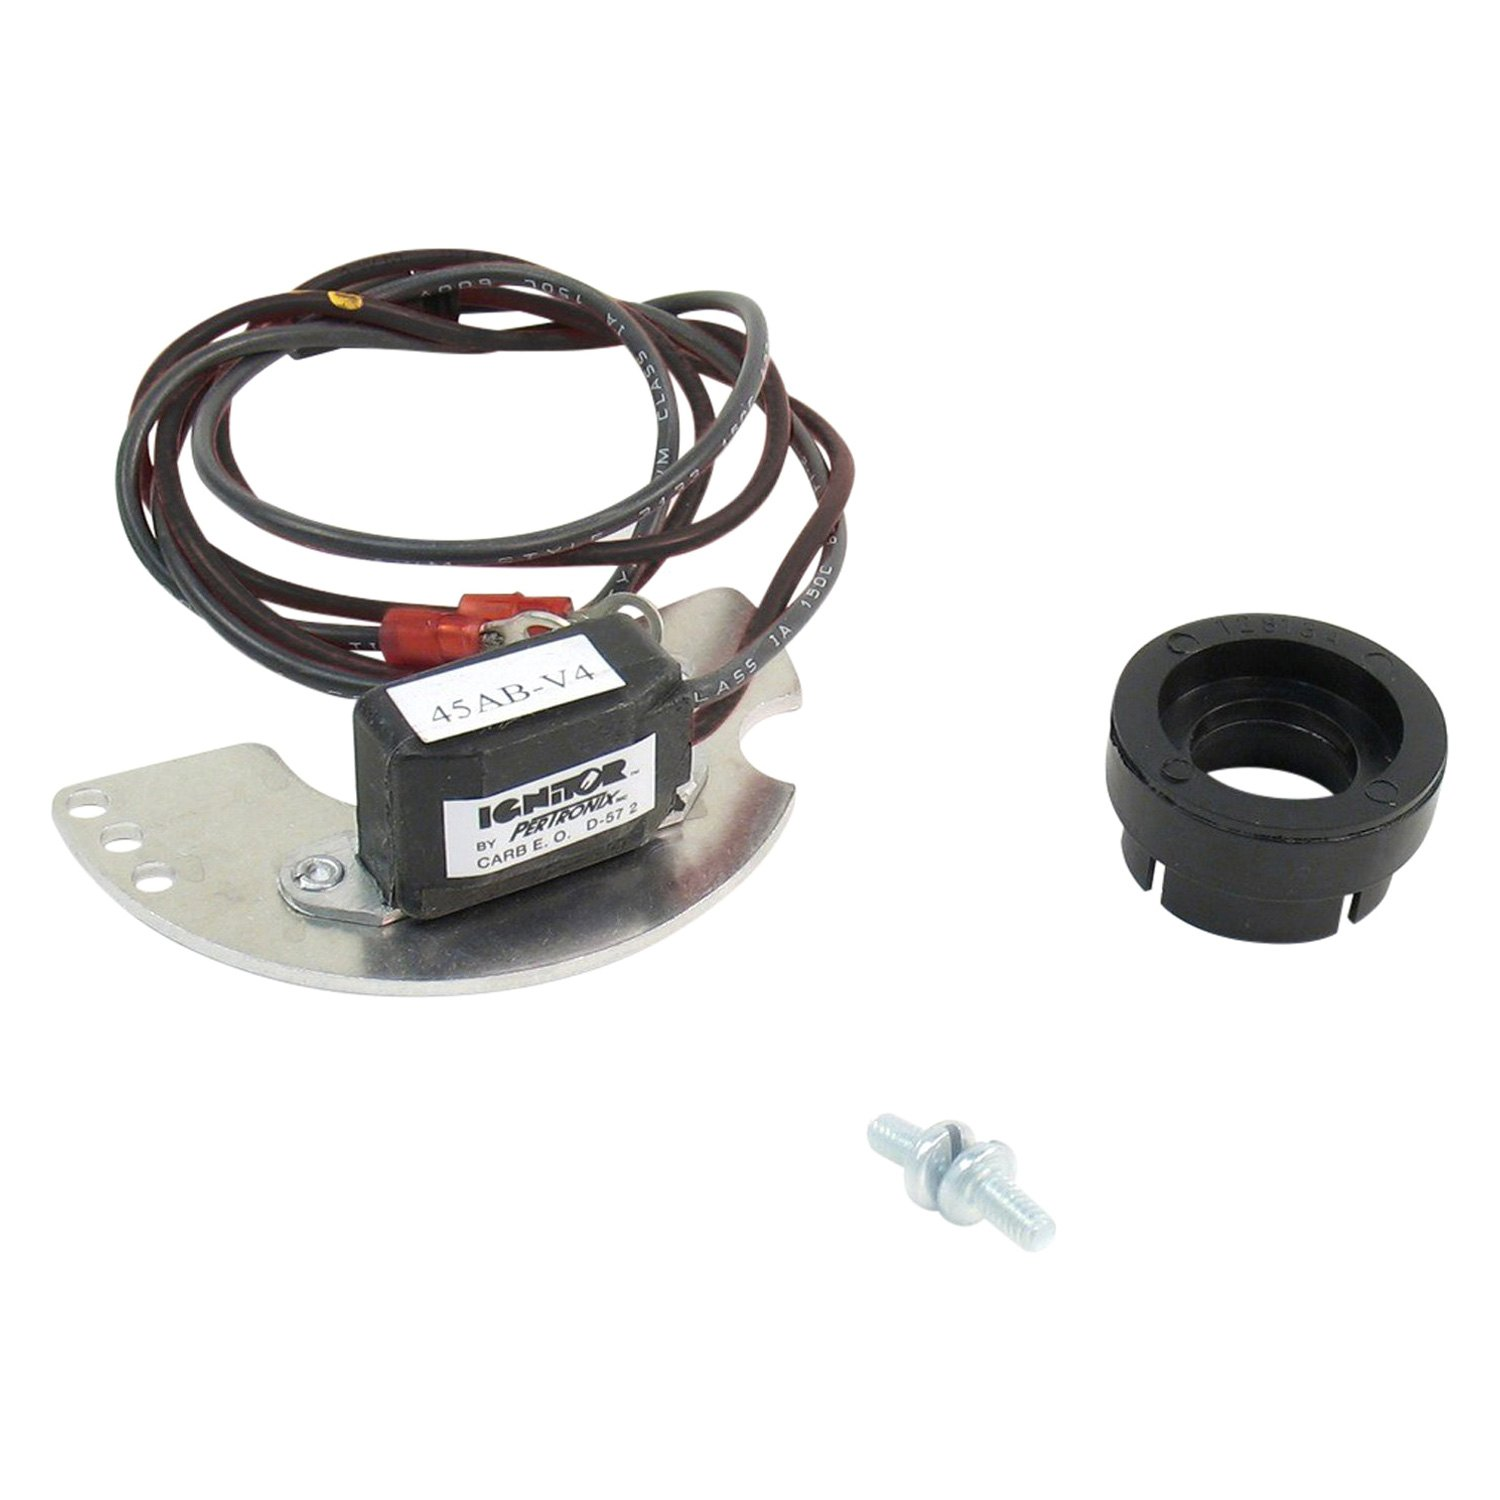 For Ford Thunderbird 1955-1956 PerTronix 1282P6 Ignitor Electronic Ignition Kit  eBay